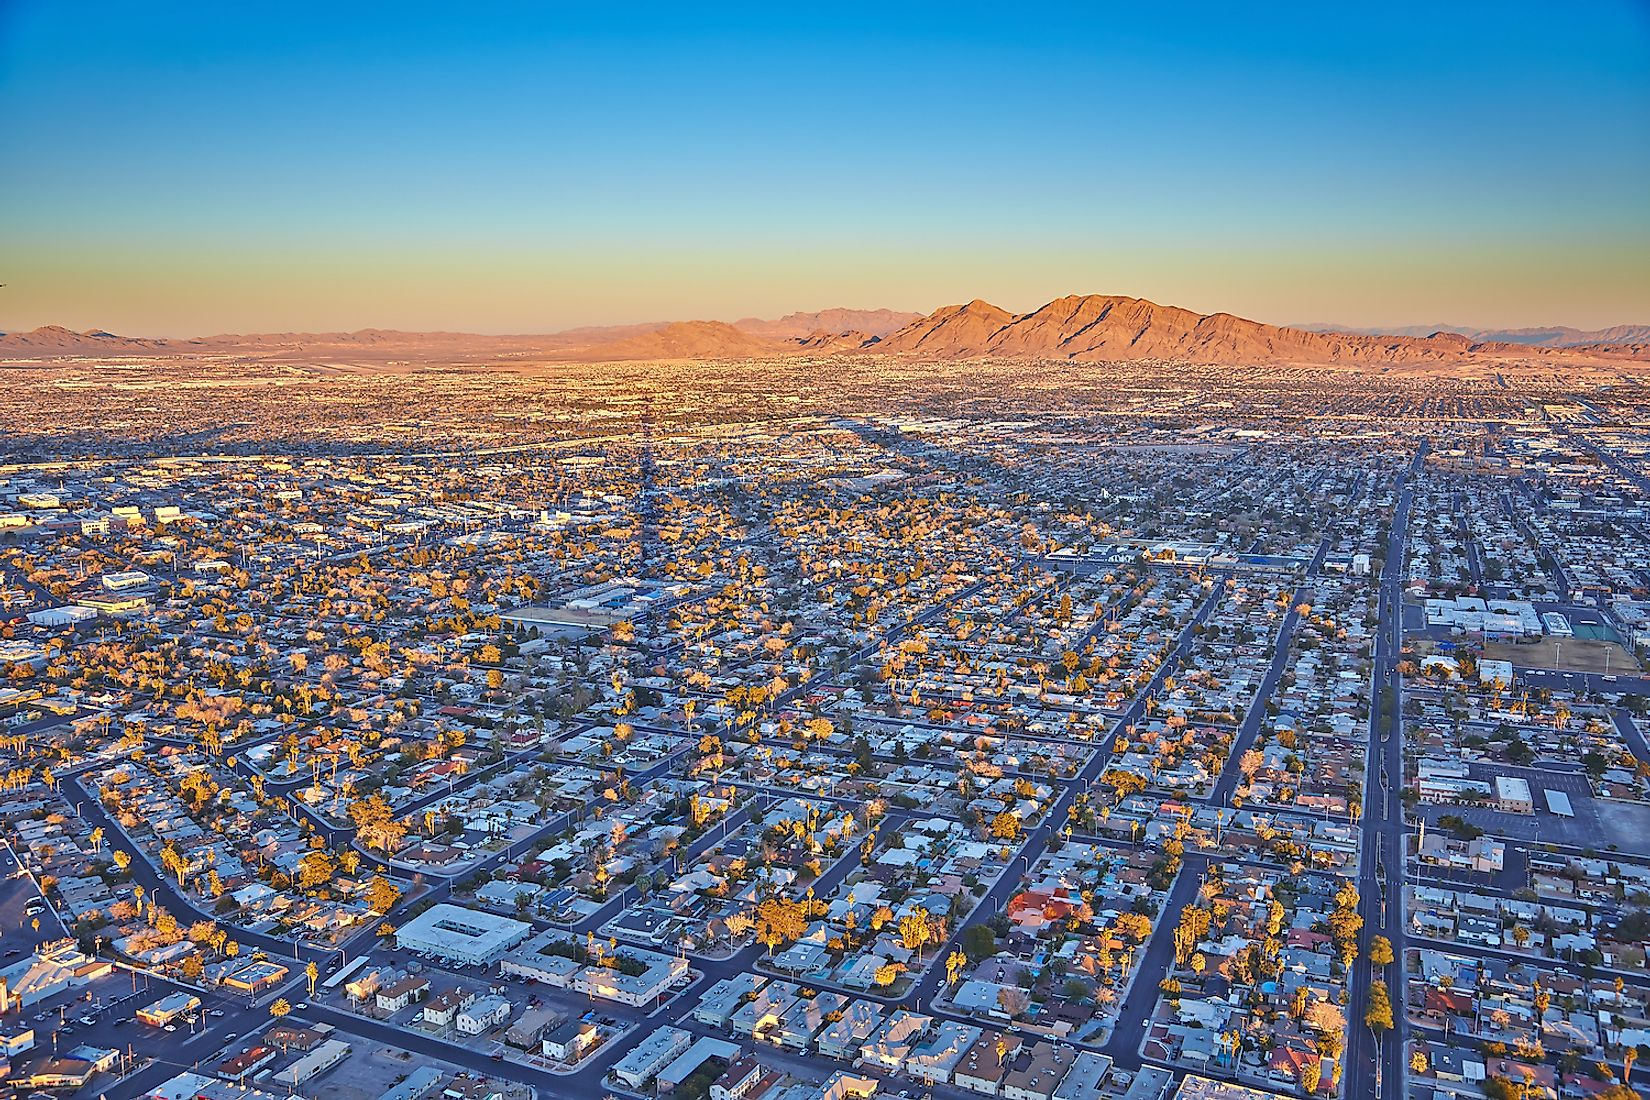 10 Thriving Cities Built In Deserts Across The World